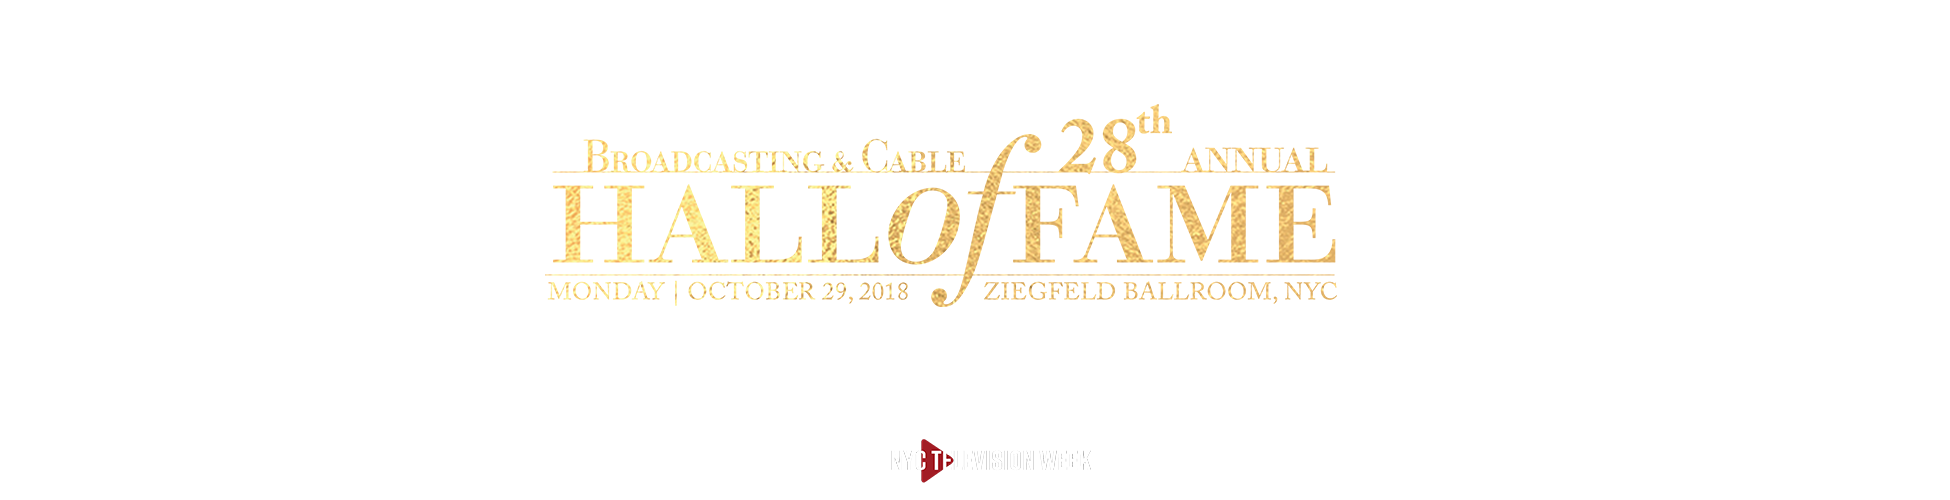 October 29, 2018  |  Ziegfeld Ballroom